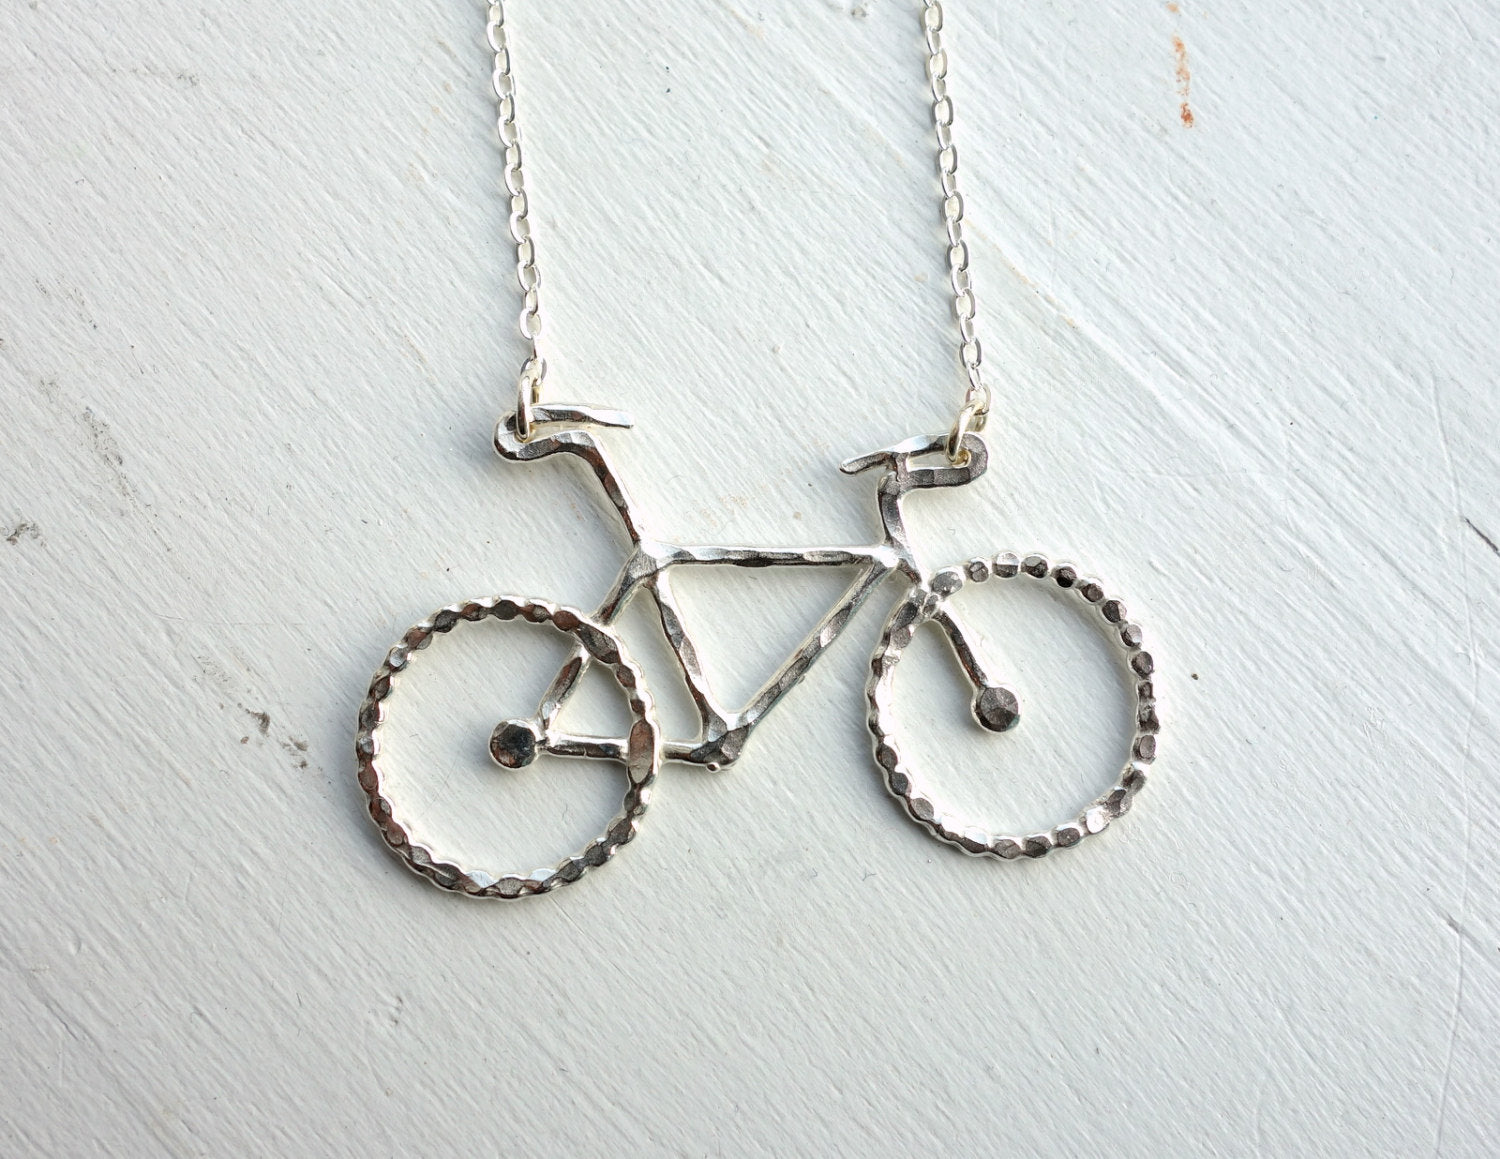 Handmade Sterling Silver Bike Necklace- Rachel Pfeffer, Bicycle, bike jewelry, bike necklace